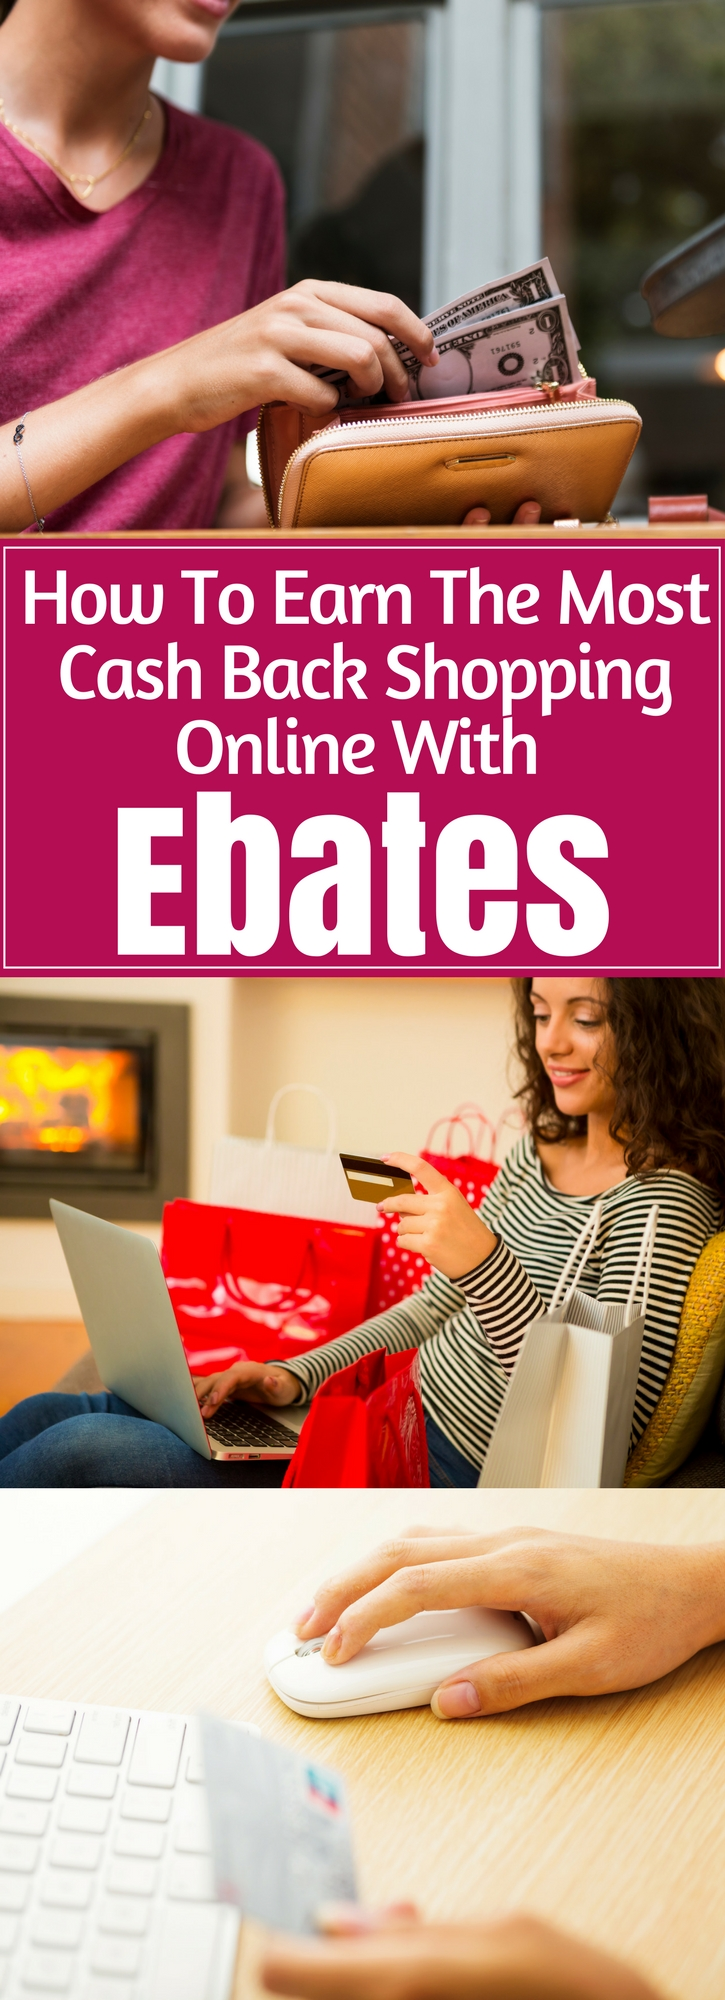 How To Get Cash Back Shopping